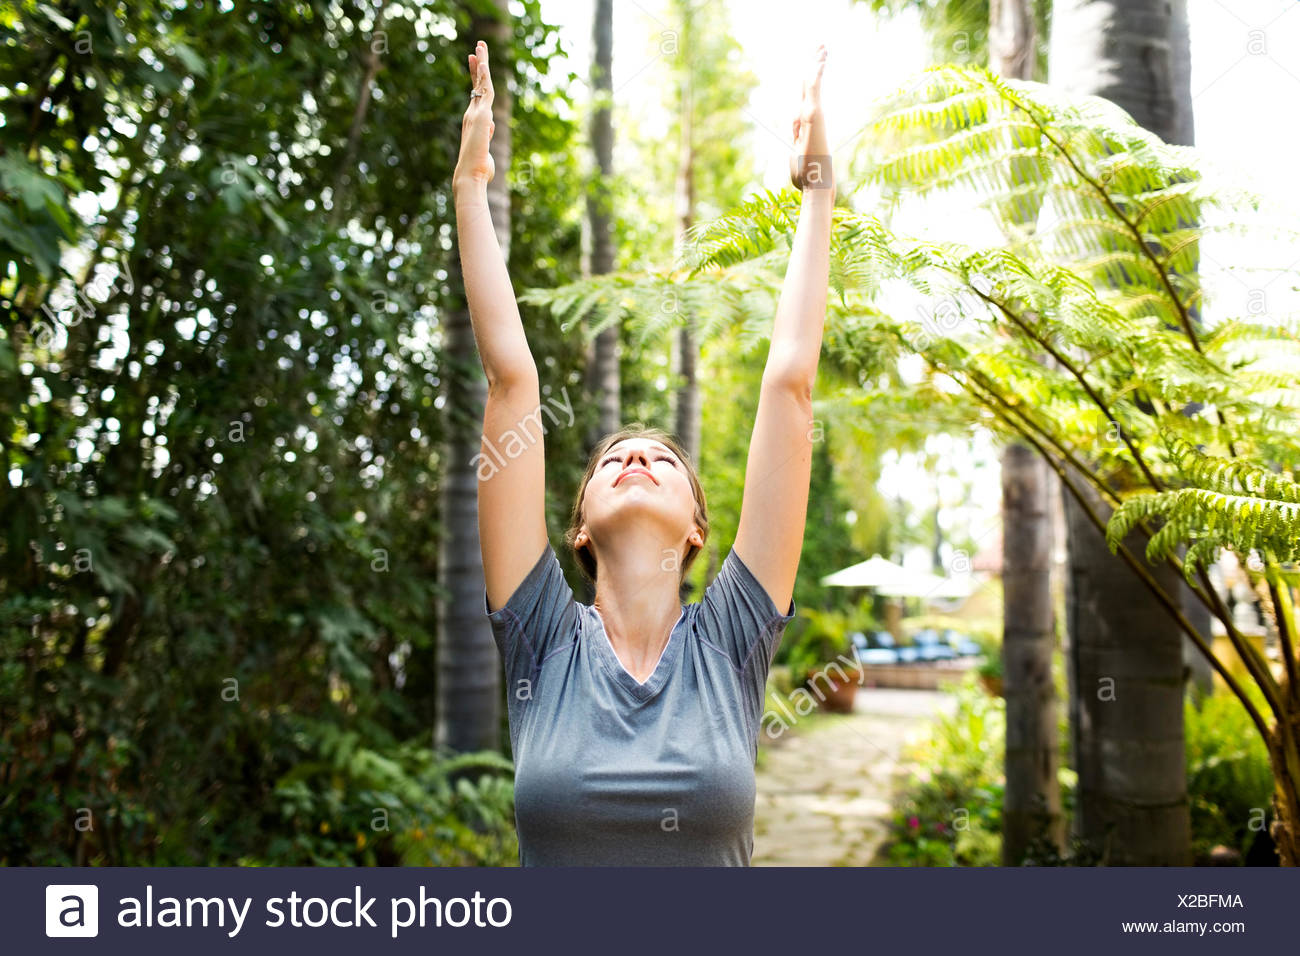 Woman practicing yoga Photo Stock